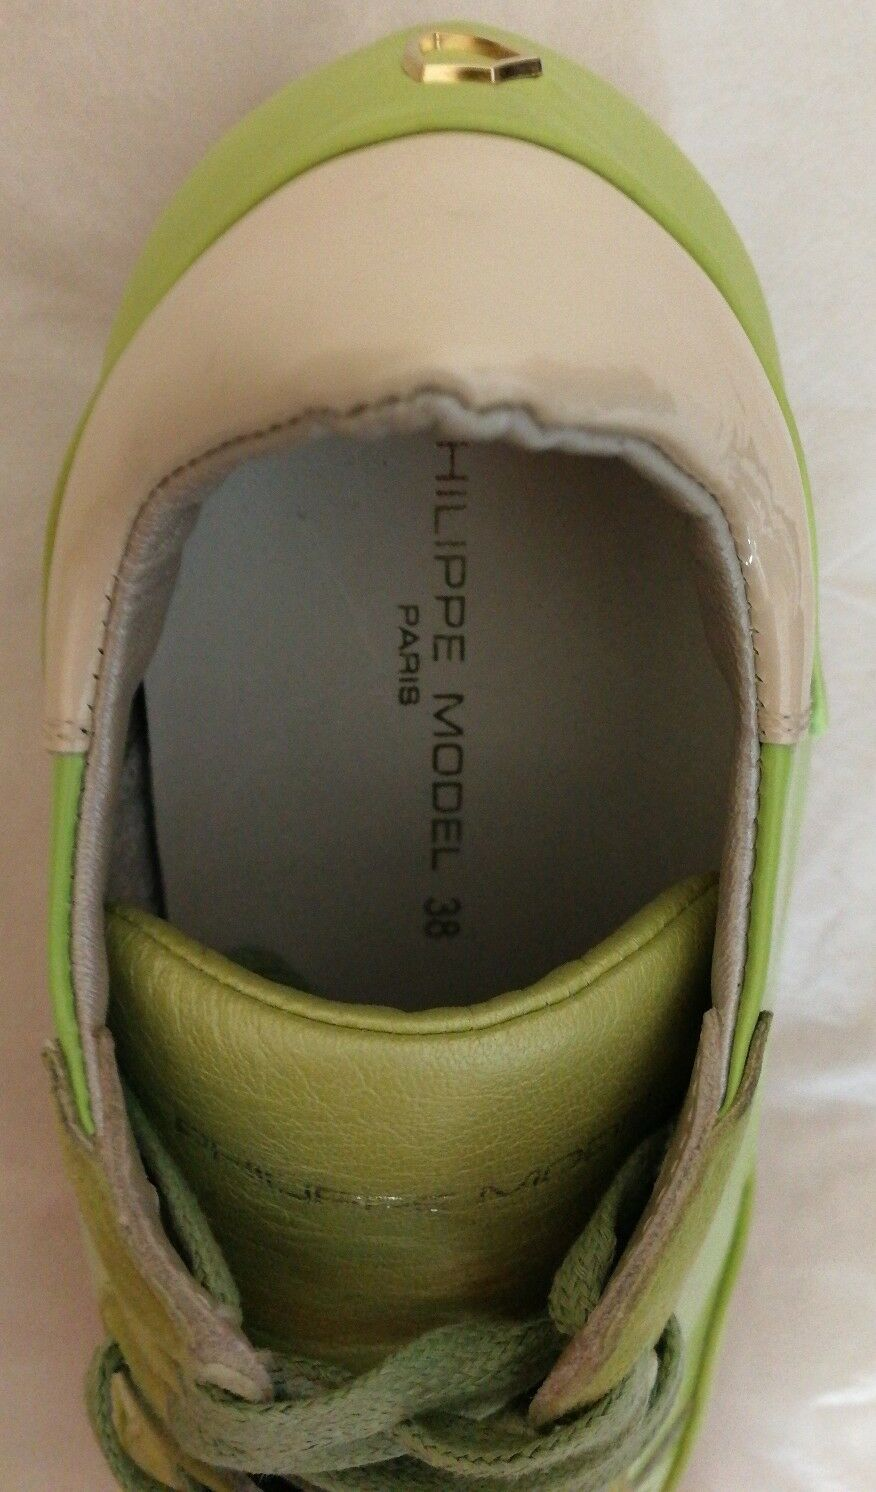 Philippe Philippe Philippe Model Paradis Lace-up Sneakers Trainers Lime green Size uk 5 eu 38 c182bf